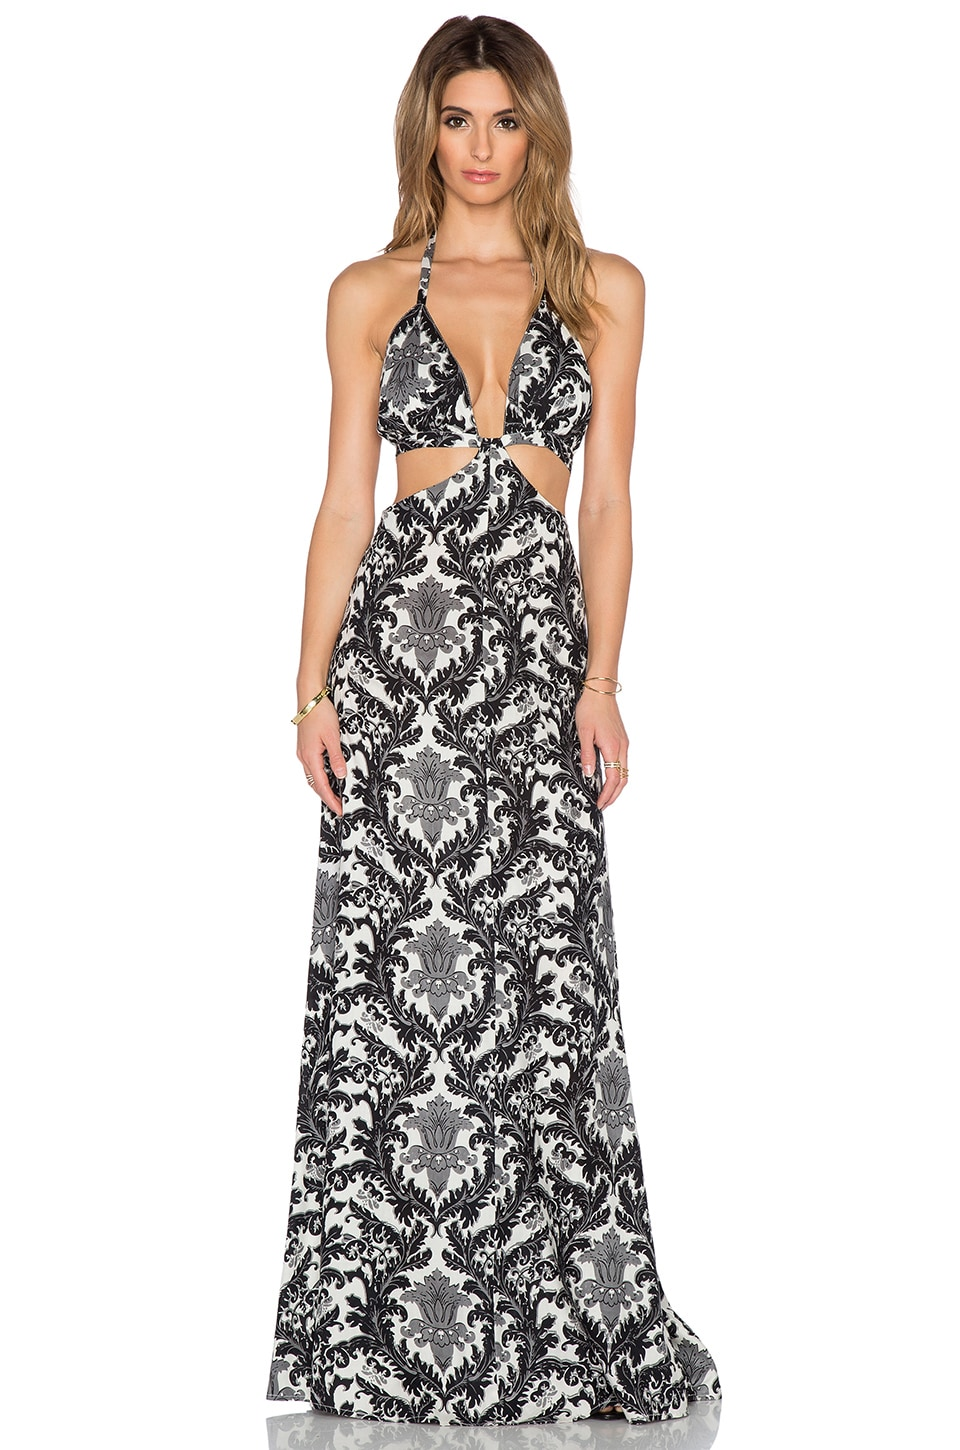 Raga Blackbird Cutout Maxi Dress in Black & White | REVOLVE